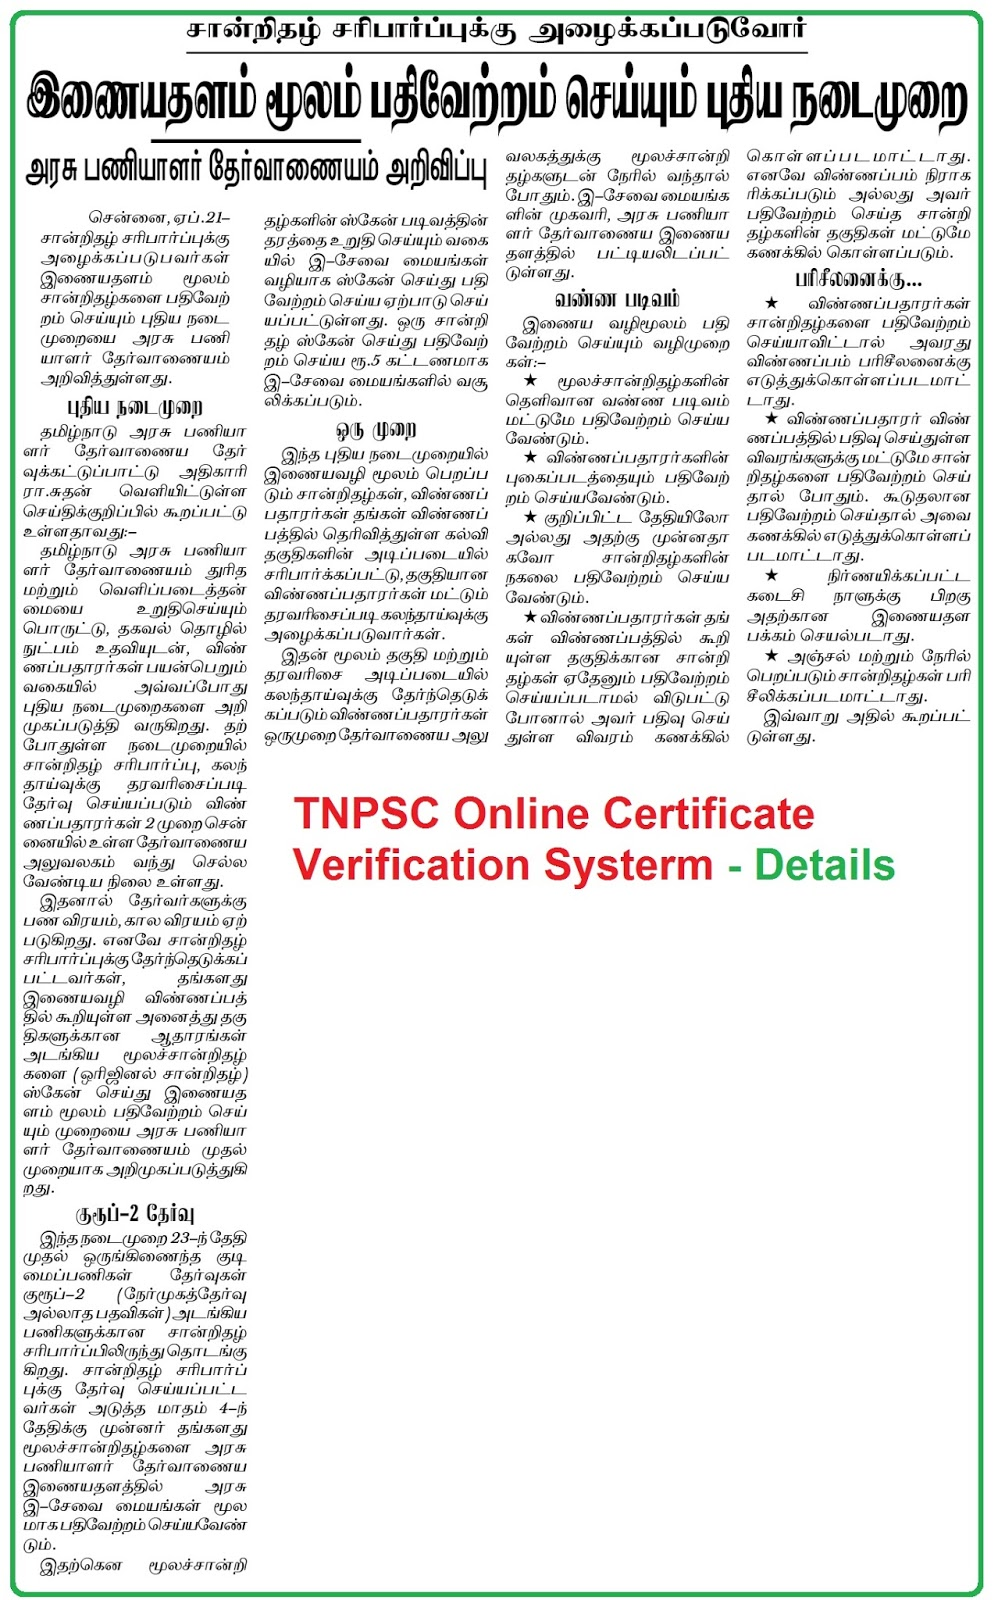 TNPSC Online Certificate verification System Introdeuced, TNPSC Latest News on April 24th 2018